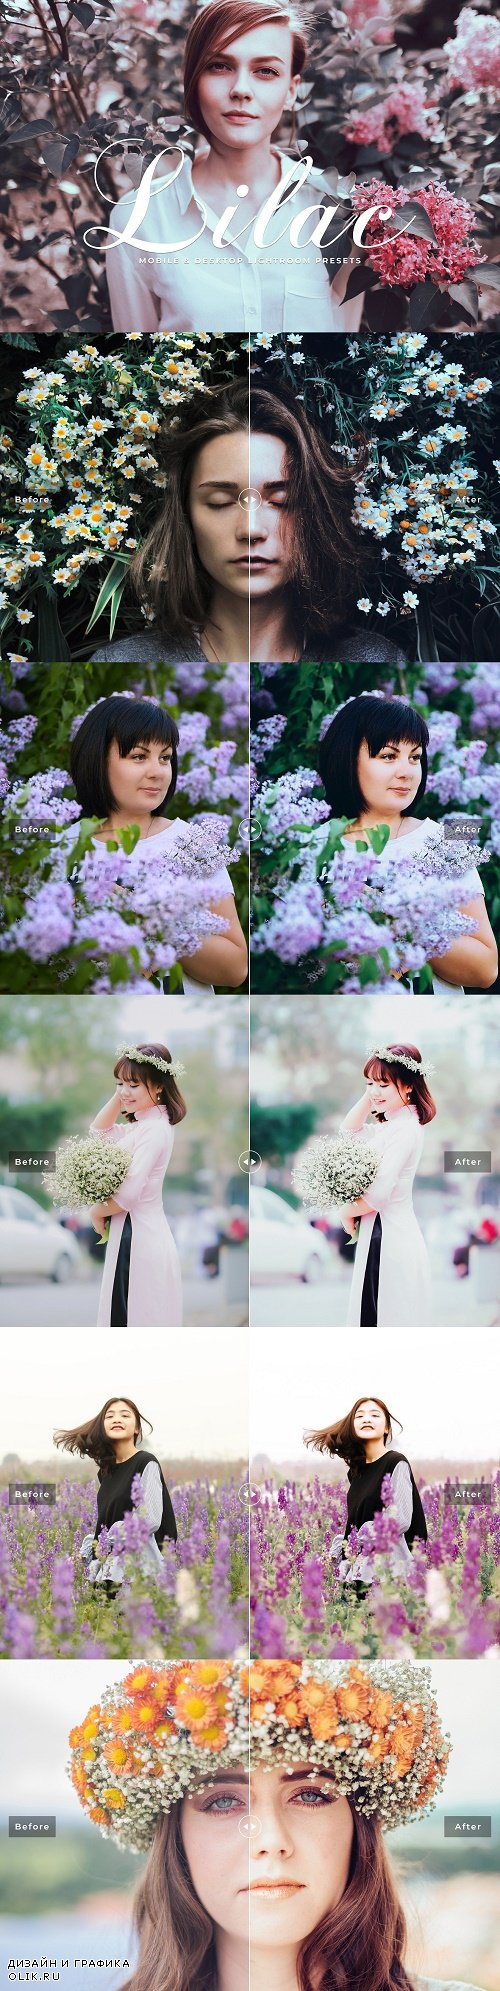 Lilac Lightroom Presets Collection - 3850785